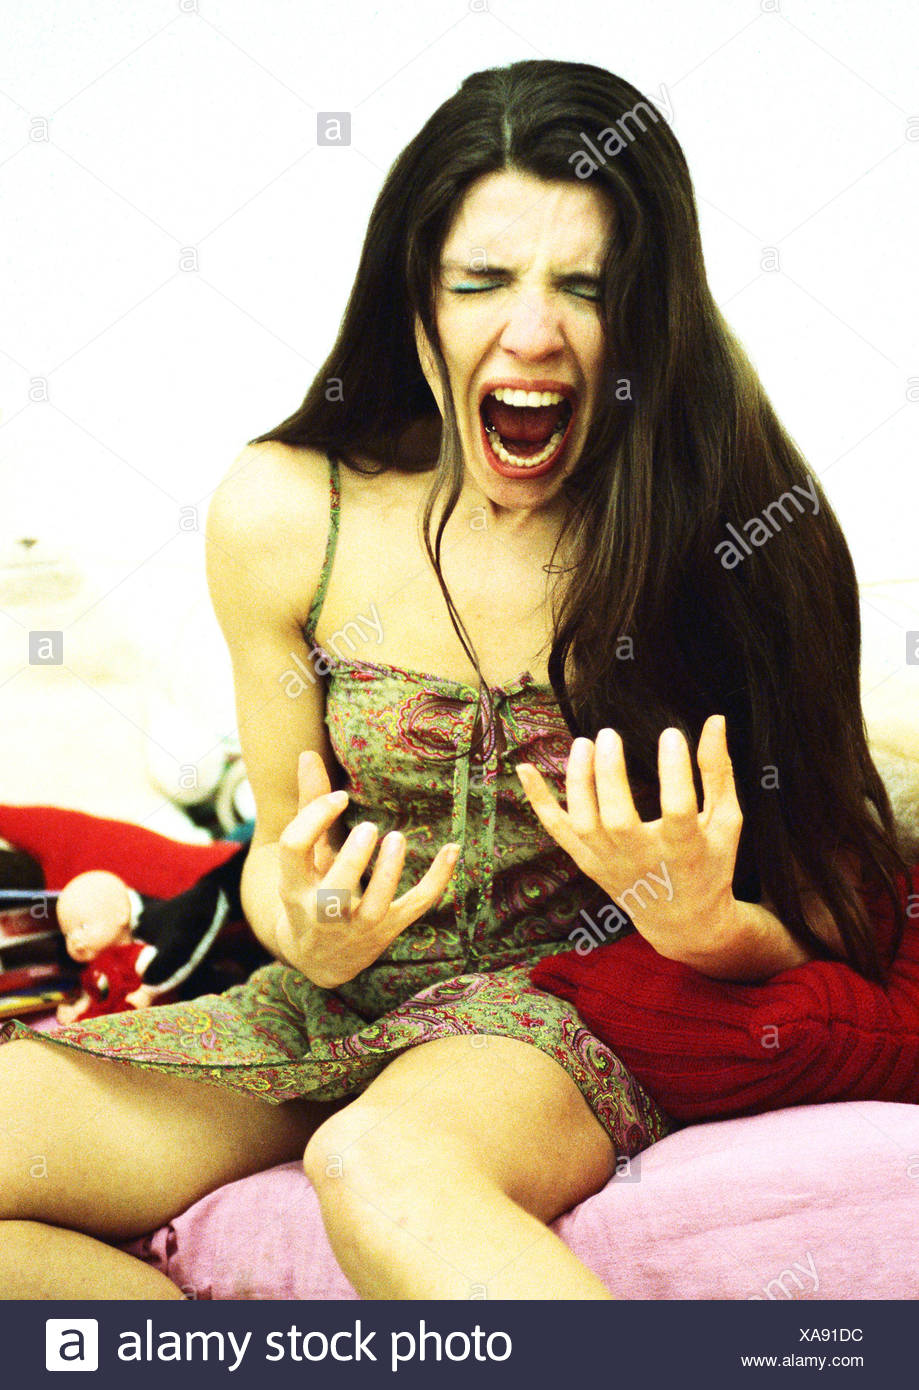 Woman sitting on bed screaming, portrait. - Stock Image